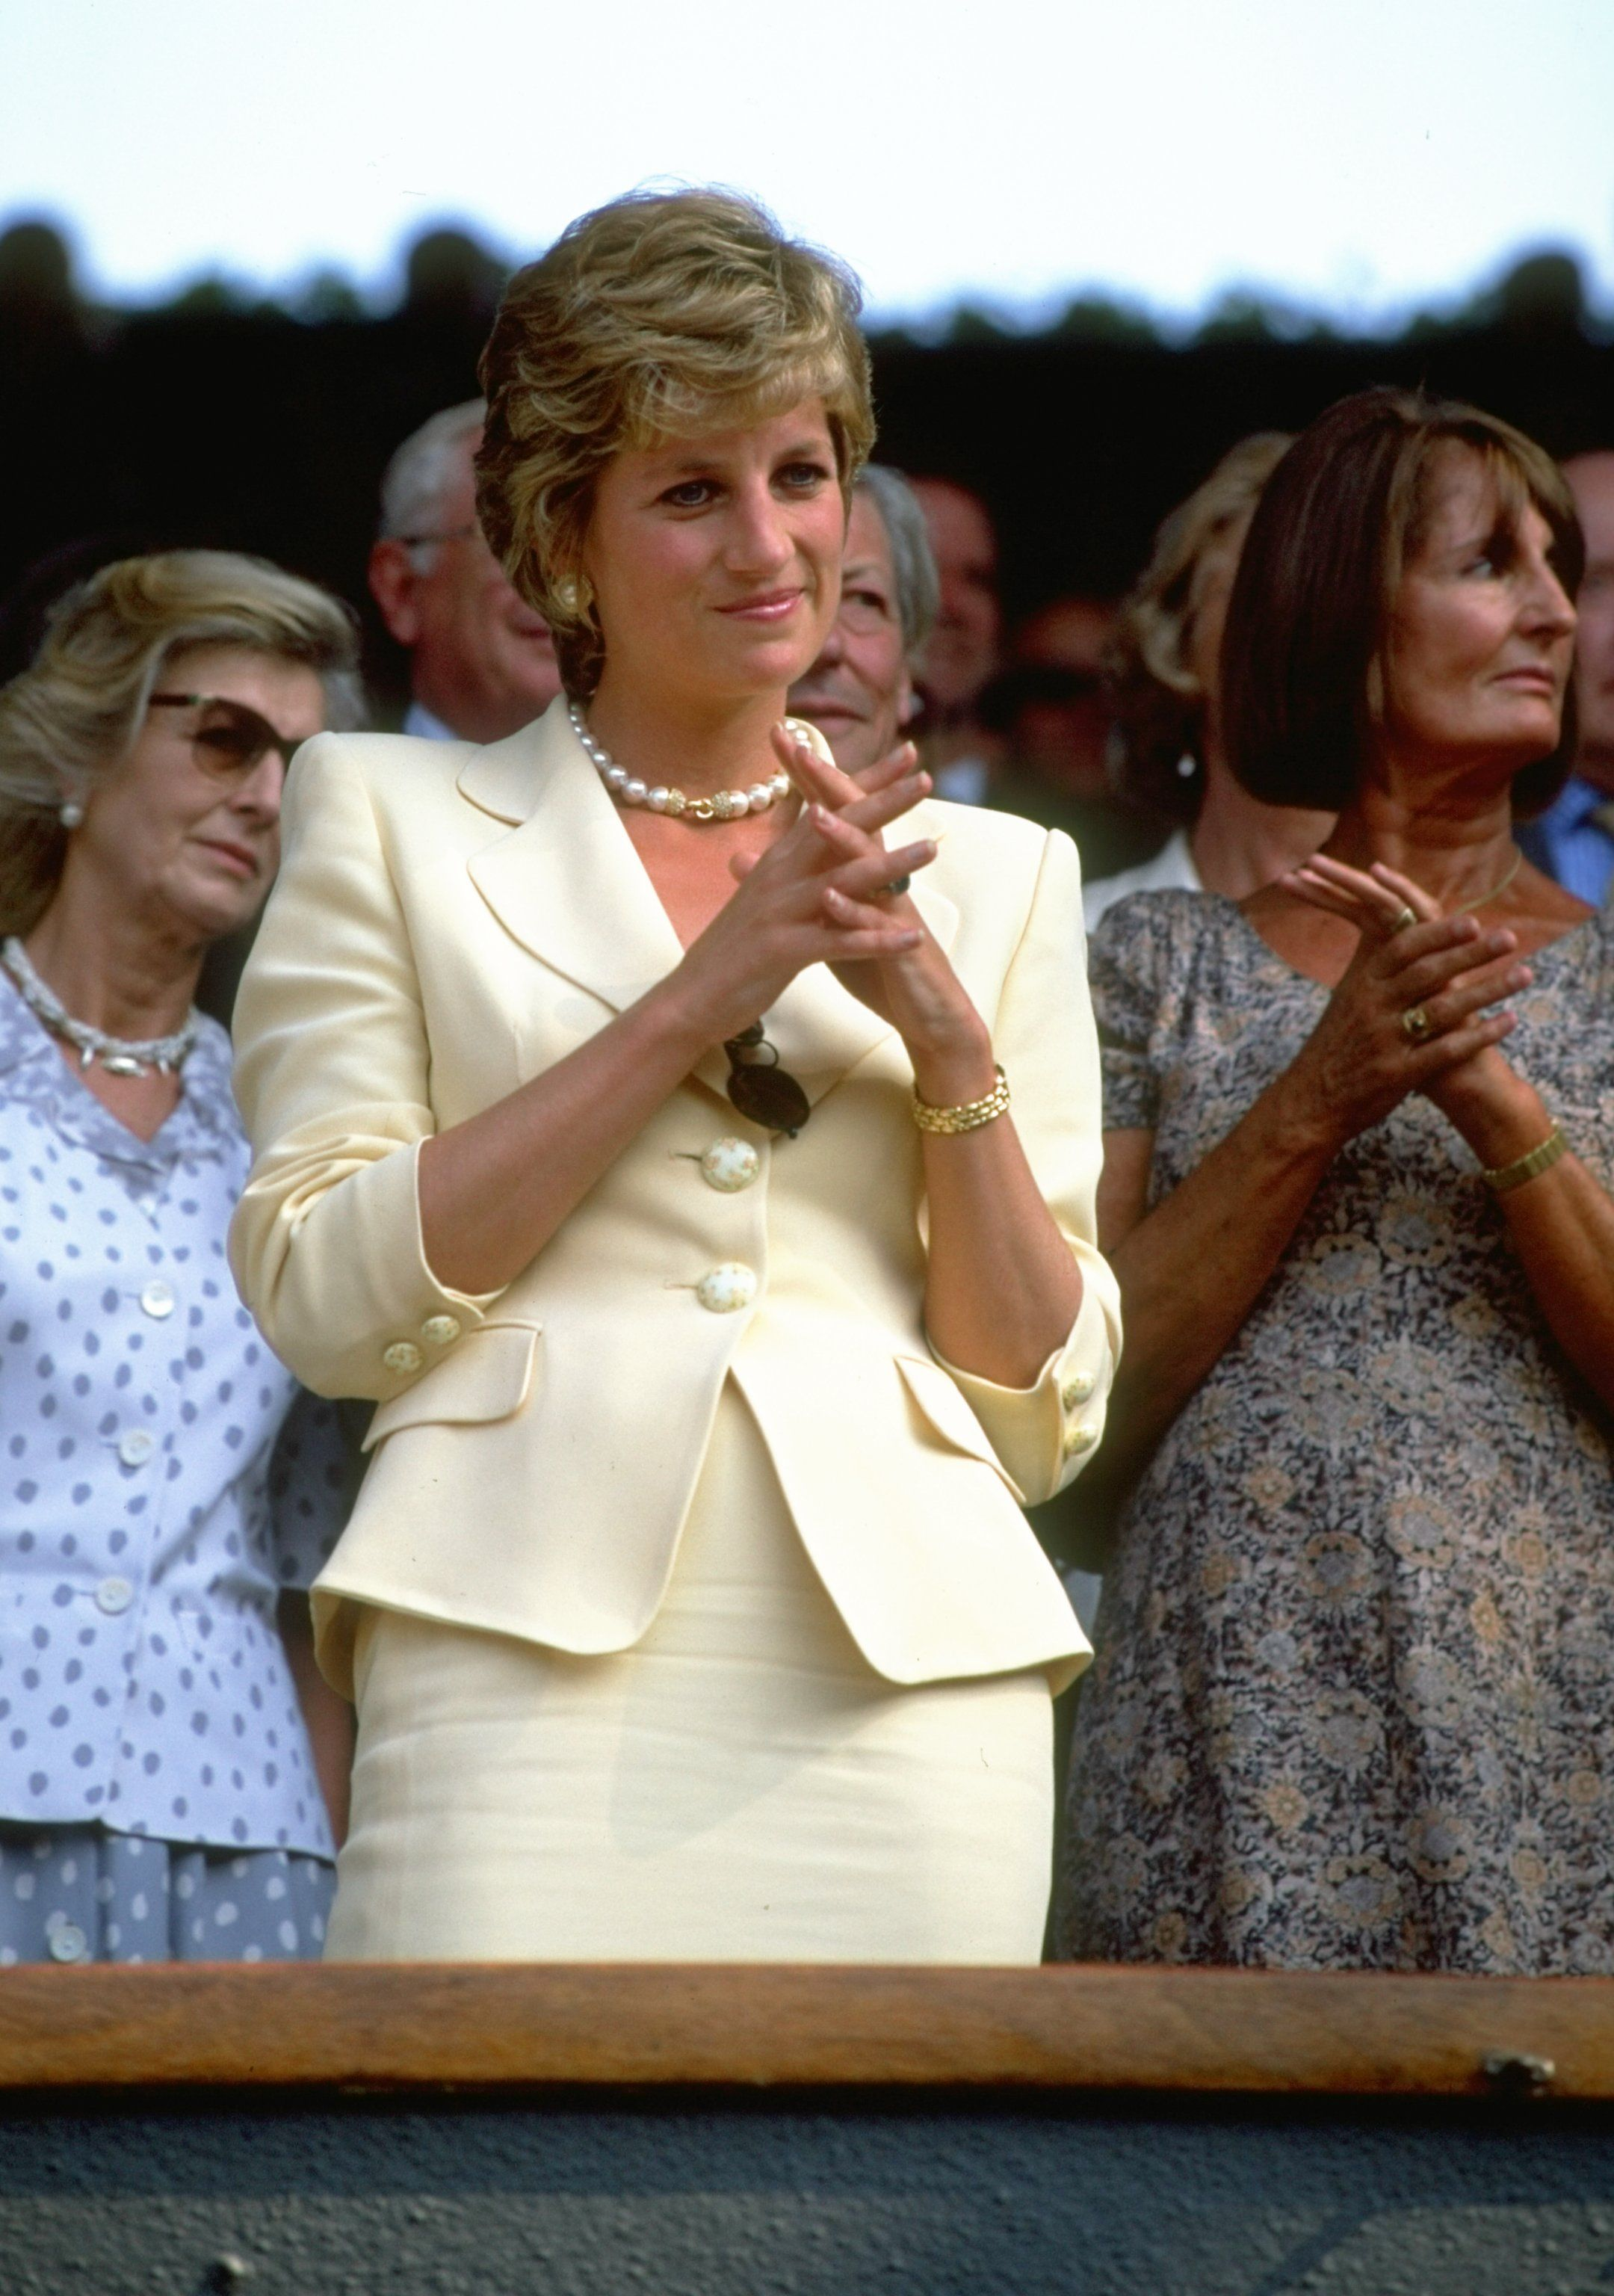 Diana, Princess of Wales at the Lawn Tennis Championships at Wimbledon in 1995   Source: Getty Images